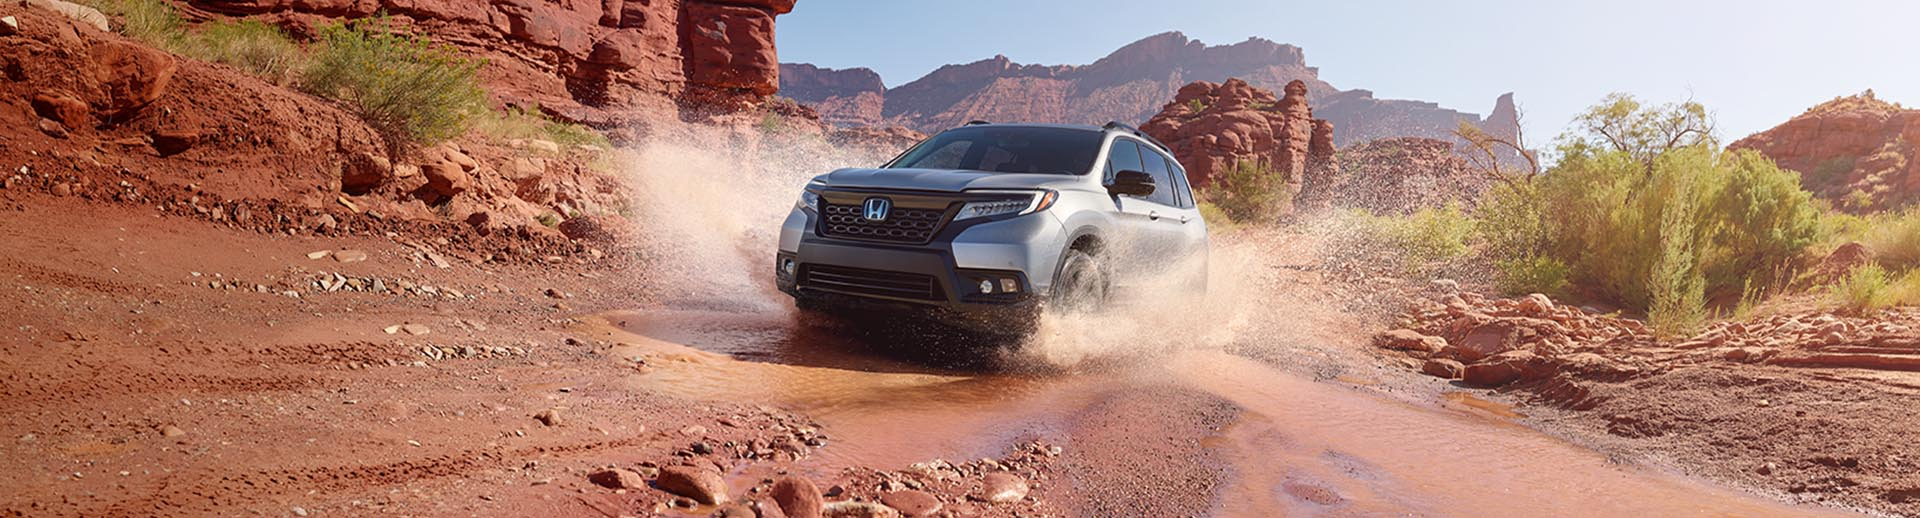 2020 Honda Passport Lifestyle Photo